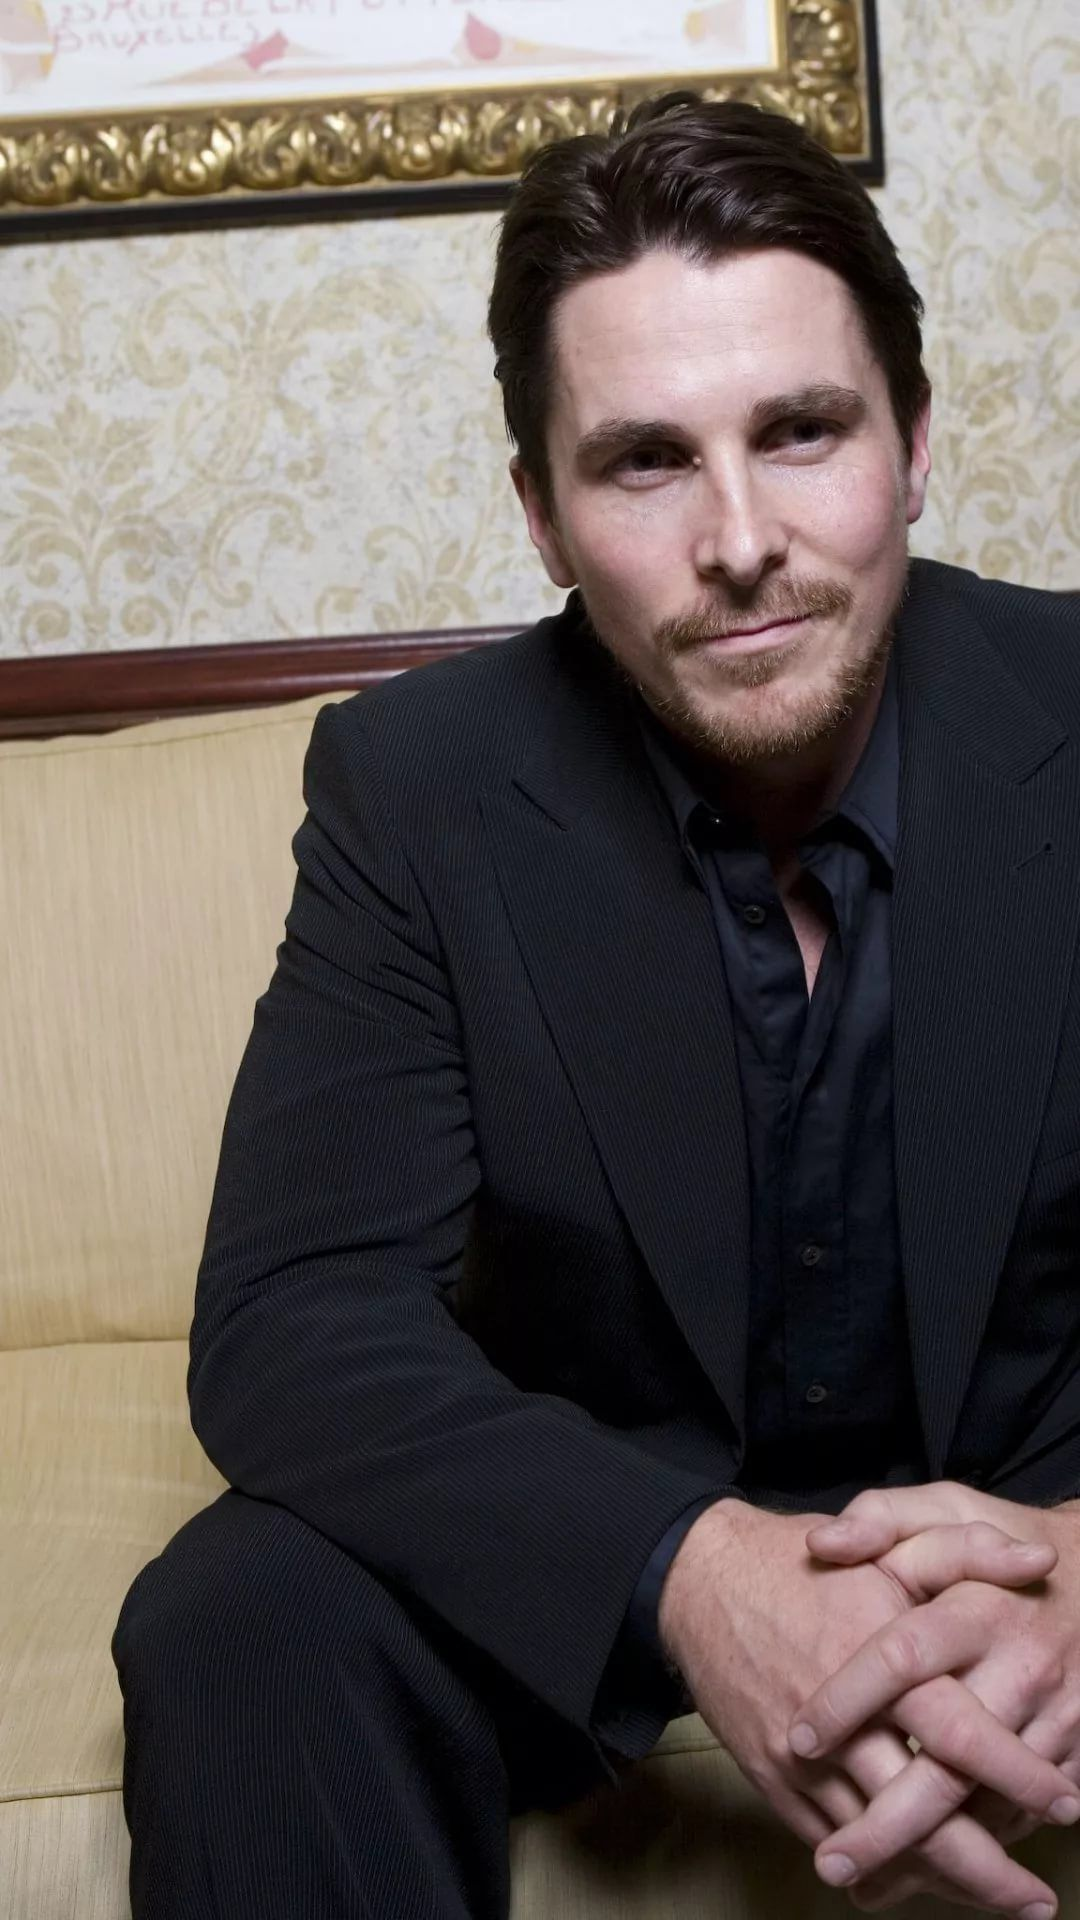 Christian Bale wallpaper for iPhone